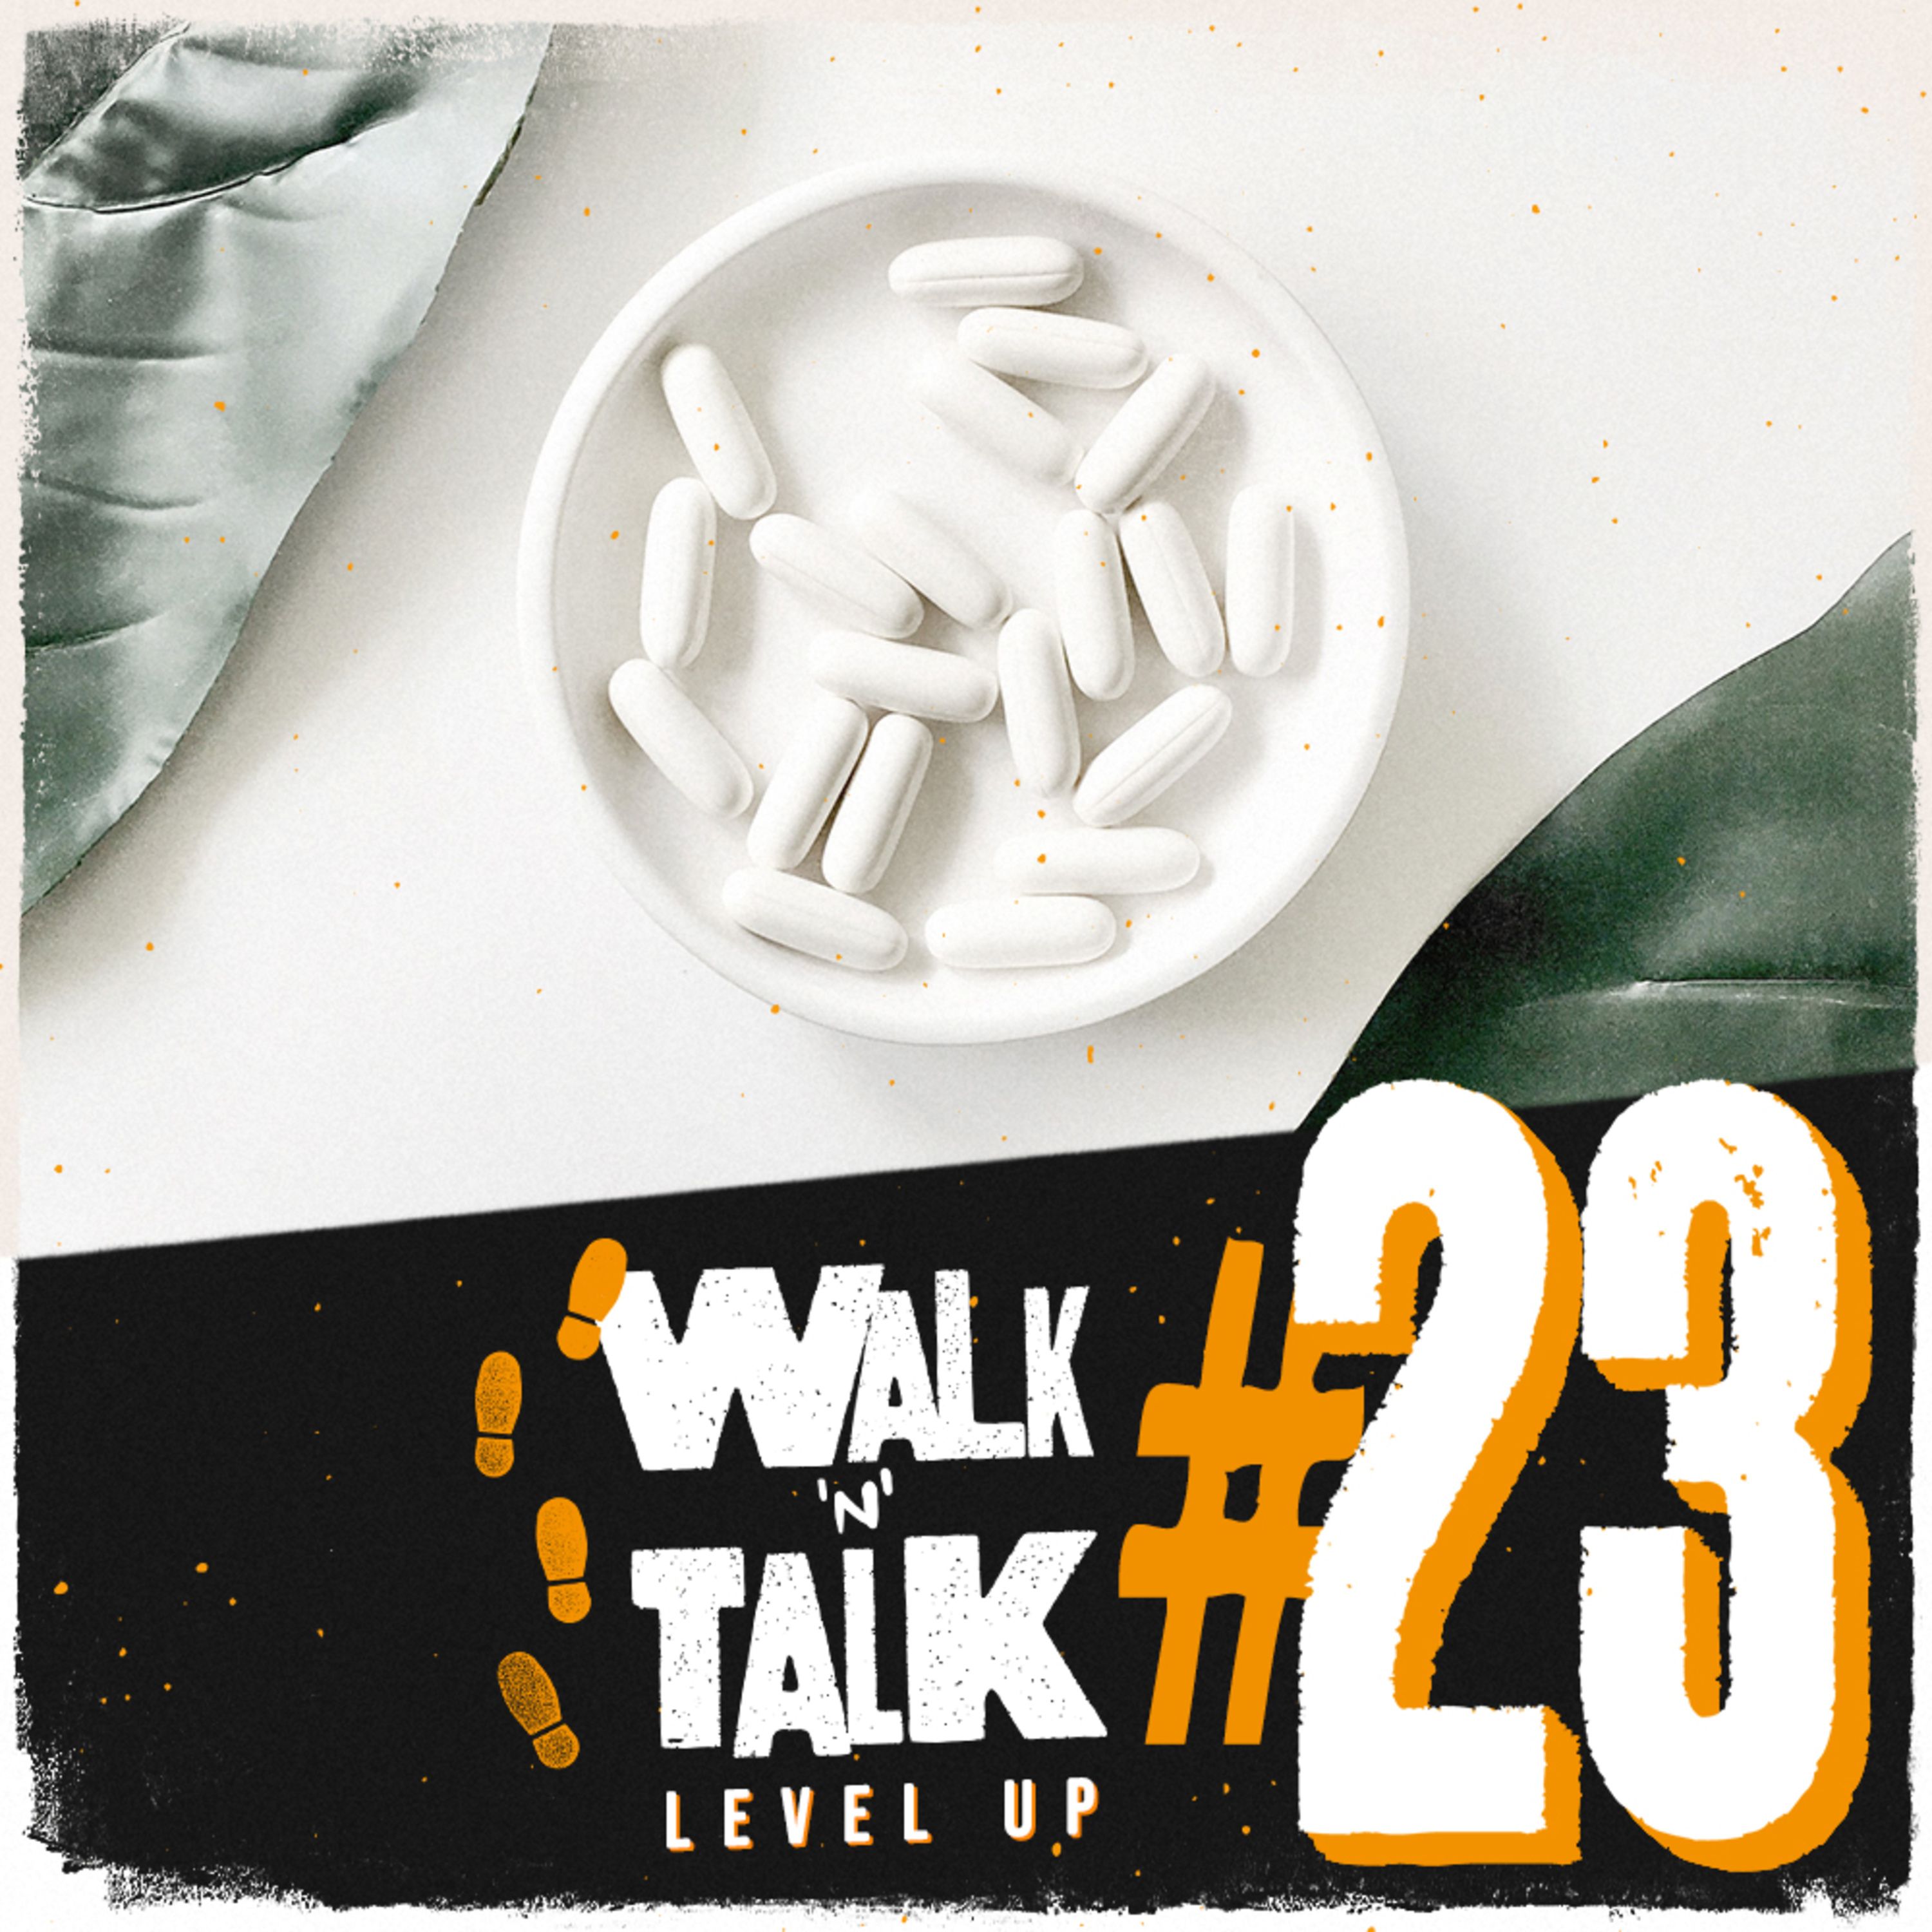 Walk 'n' Talk Level Up #23 - At the doctor